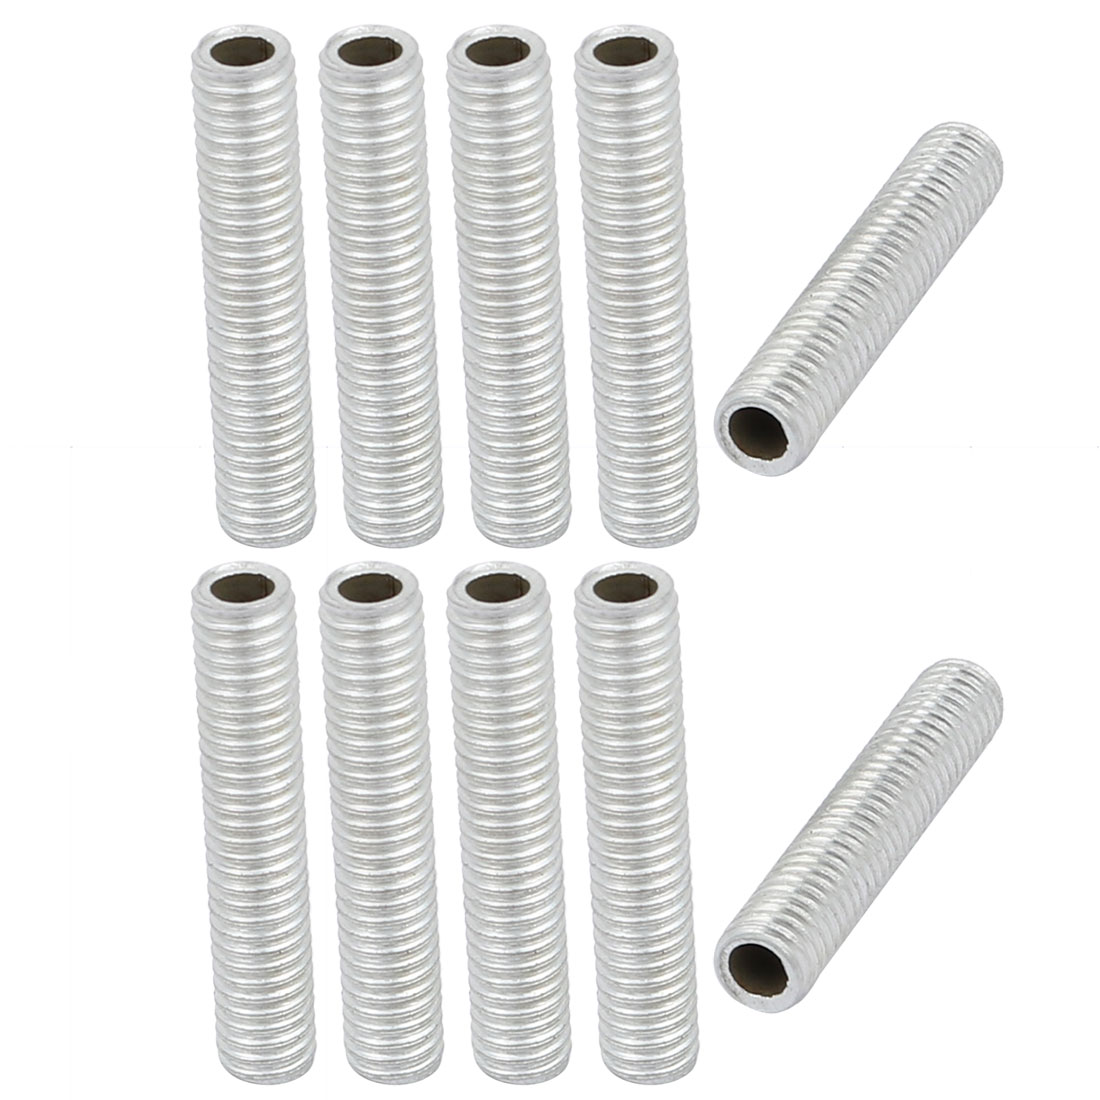 10Pcs M6 1mm Pitch Threaded Zinc Plated Pipe Nipple Lamp Parts 30mm Long